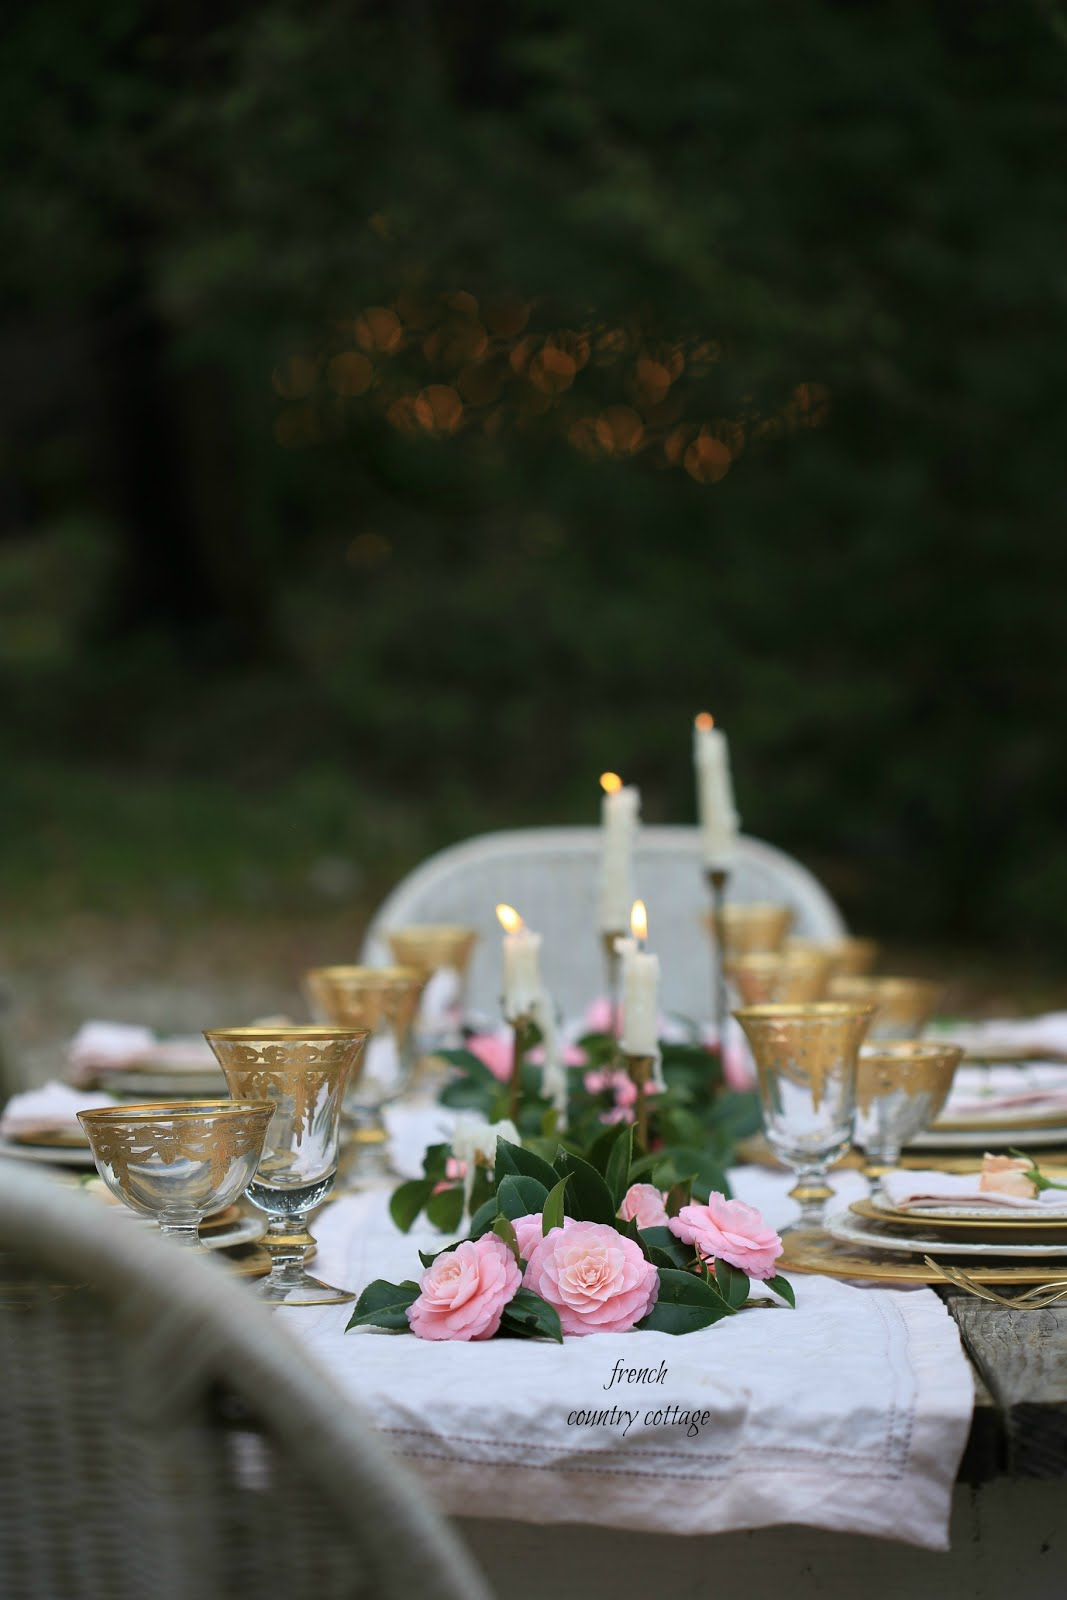 Simple Elegant table setting for spring - FRENCH COUNTRY COTTAGE